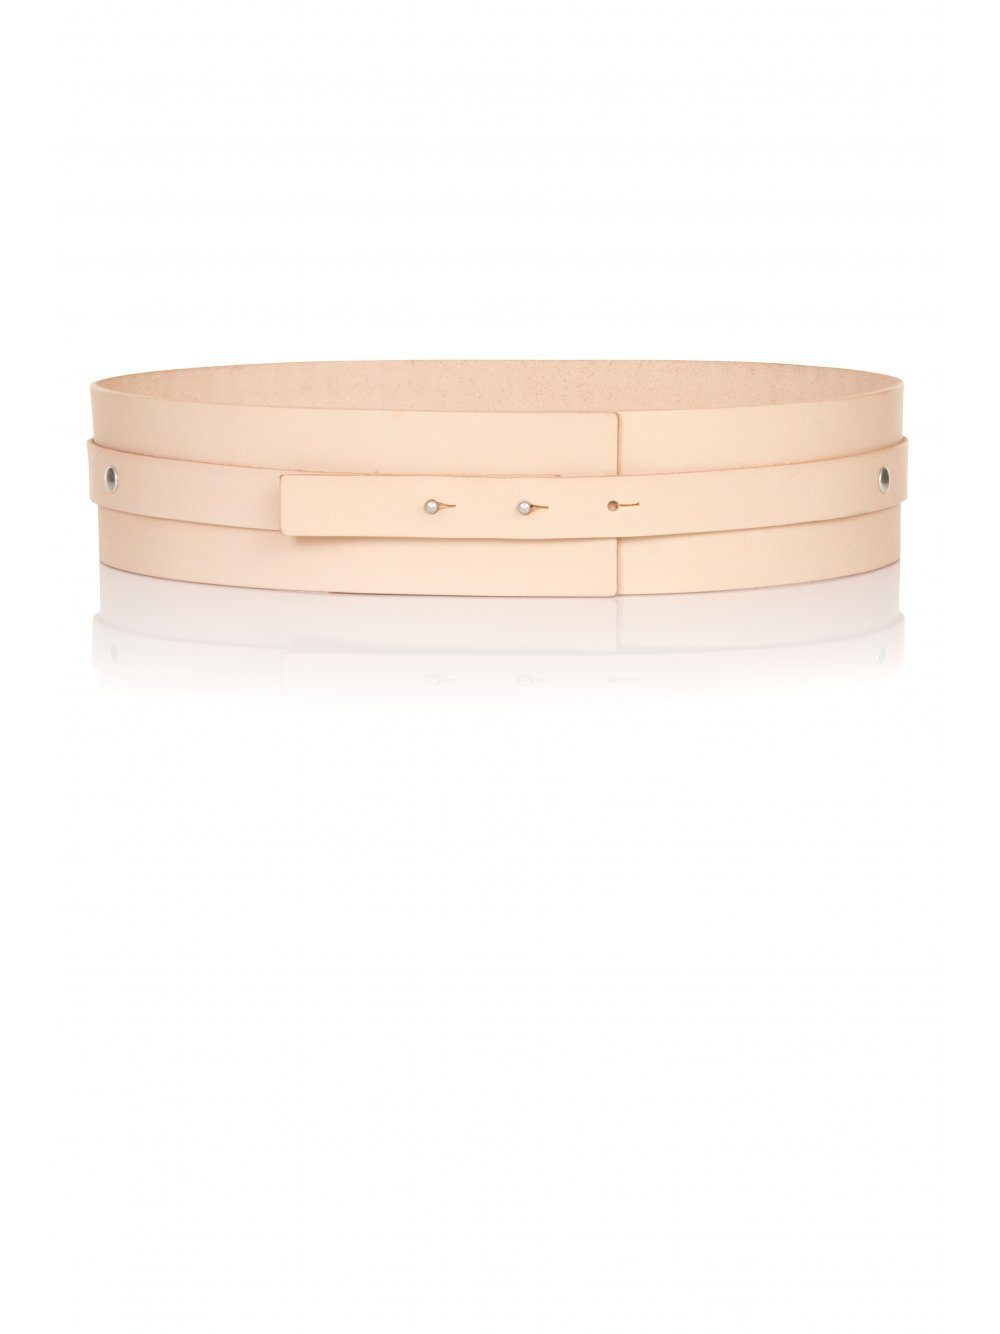 Nude Leather Strap Detail Waist Belt